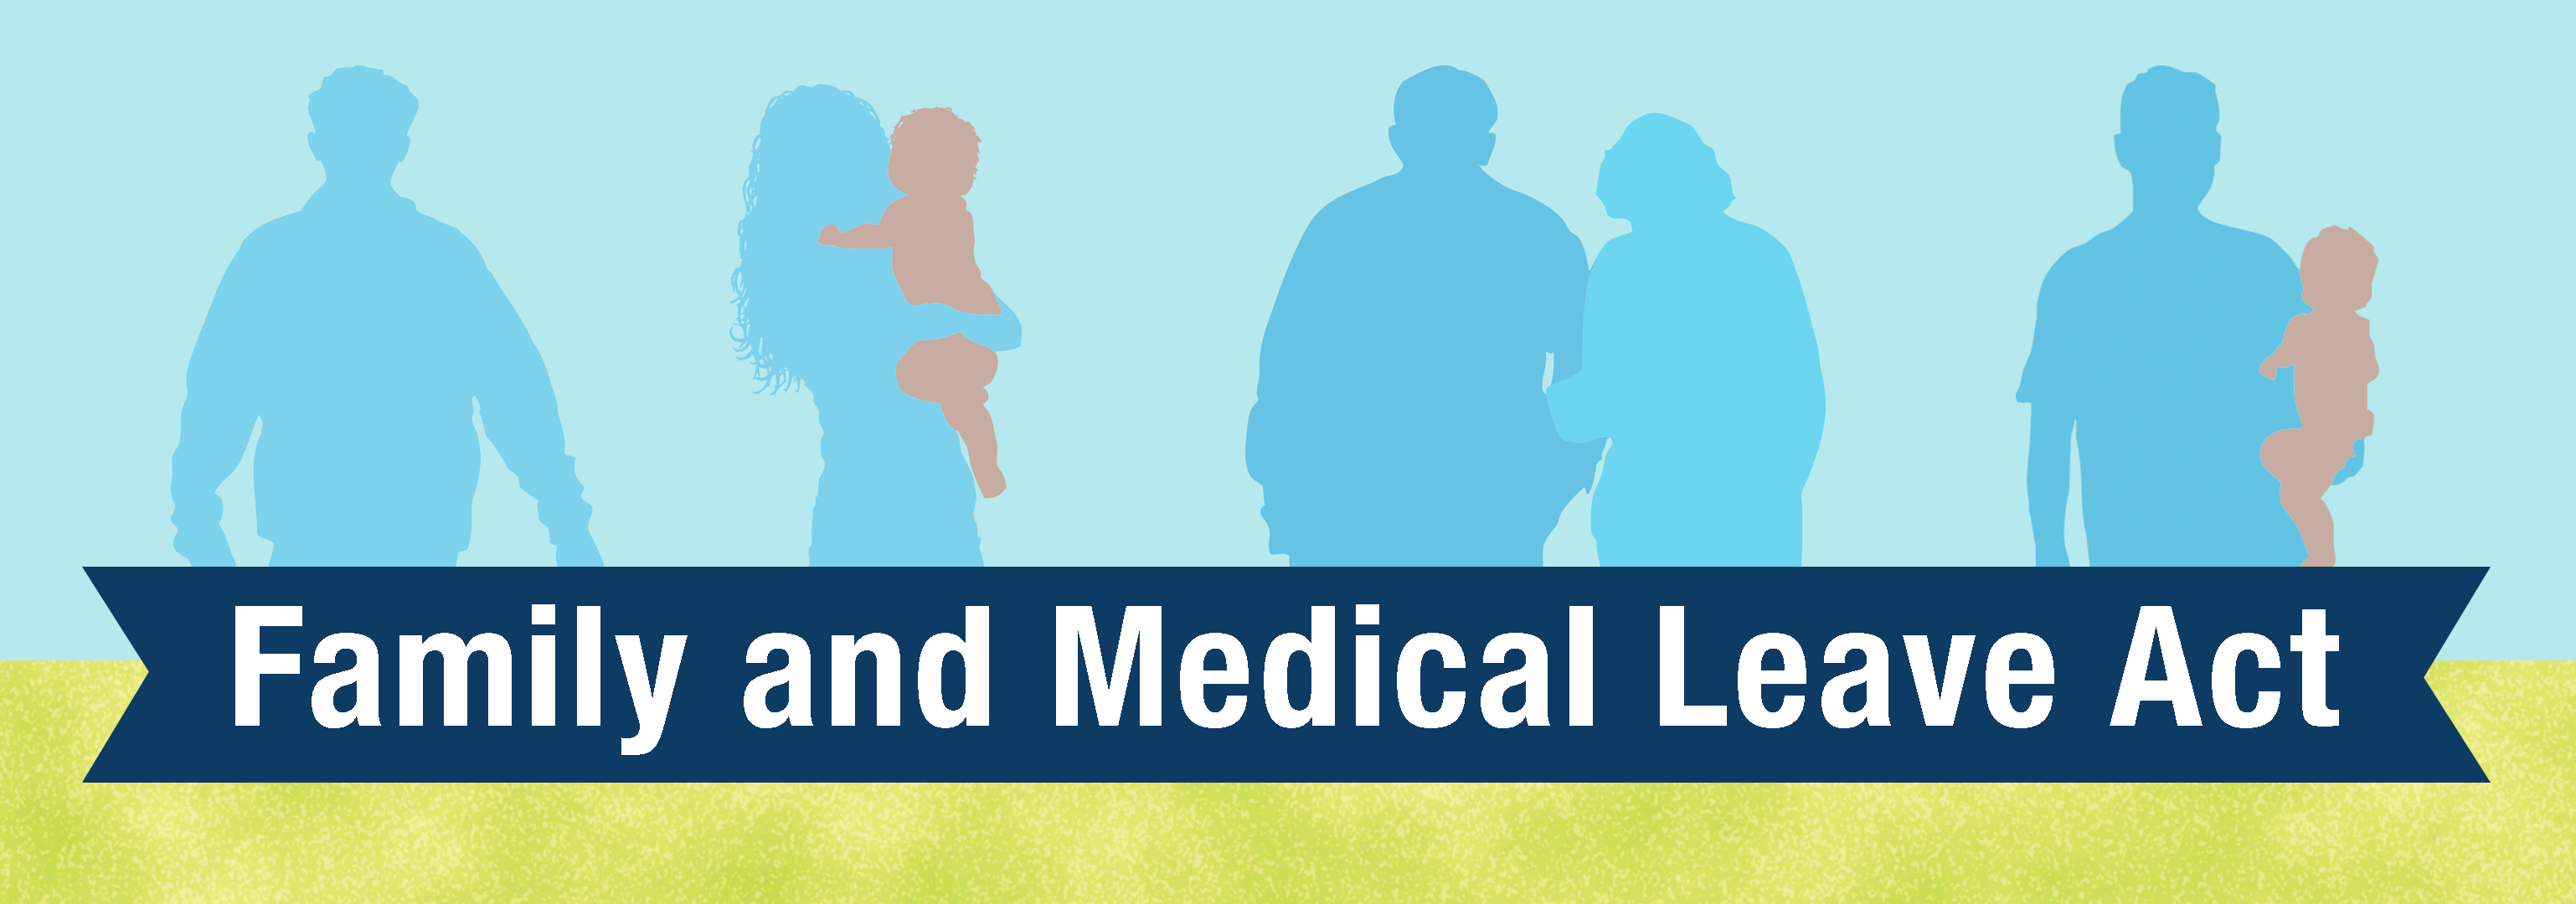 Family and Medical Leave Act | U.S. Department of Labor